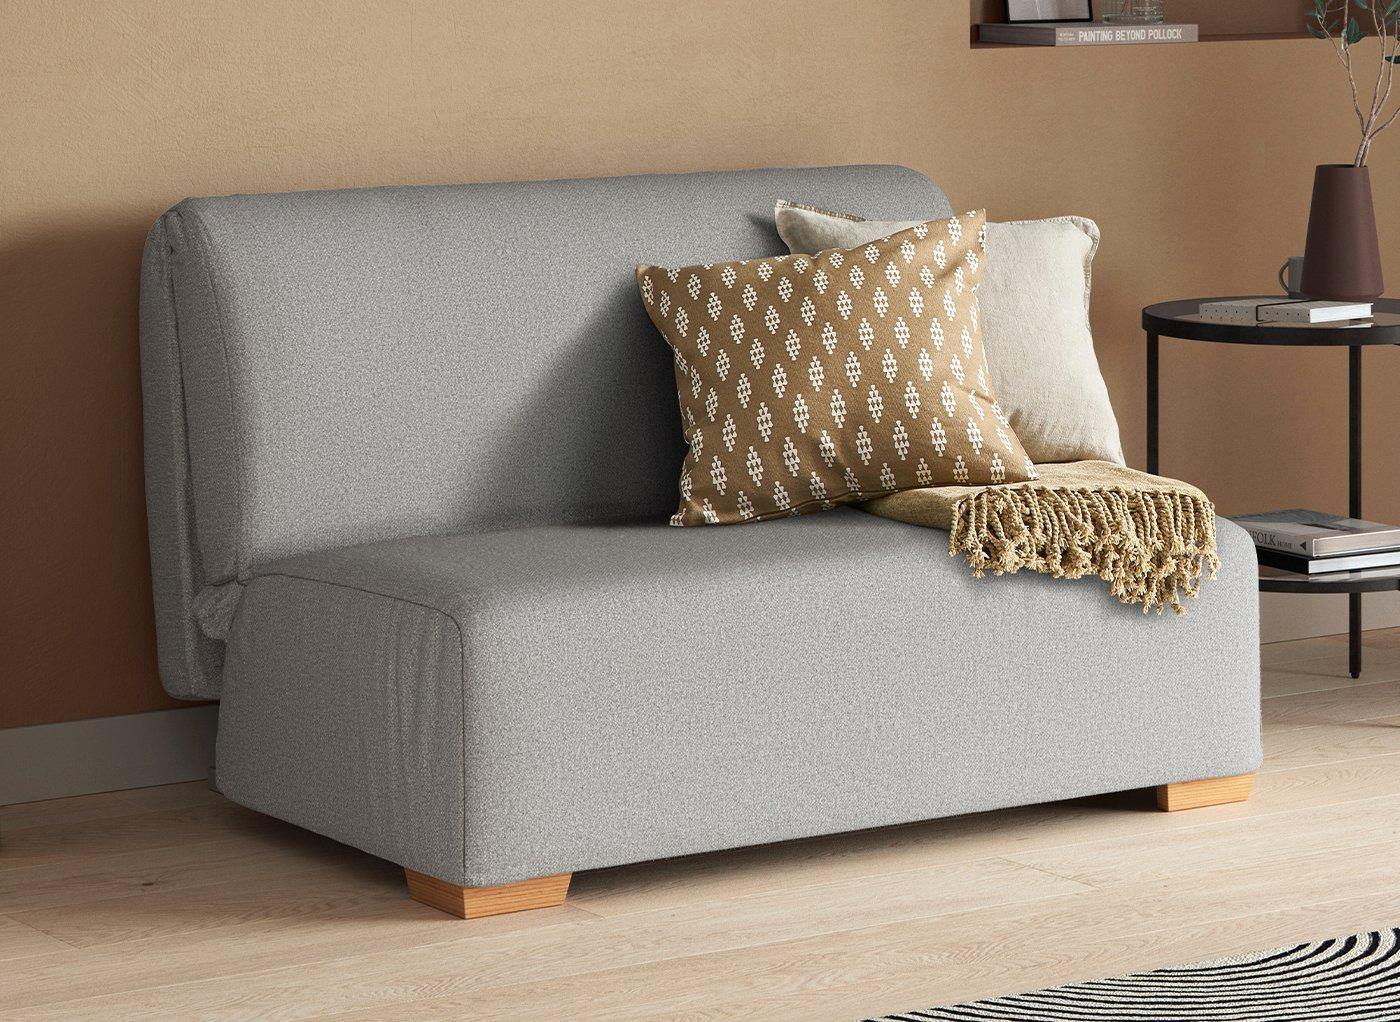 Cork 2 Seater 4'6 A-Frame Sofa Bed - Silver Double